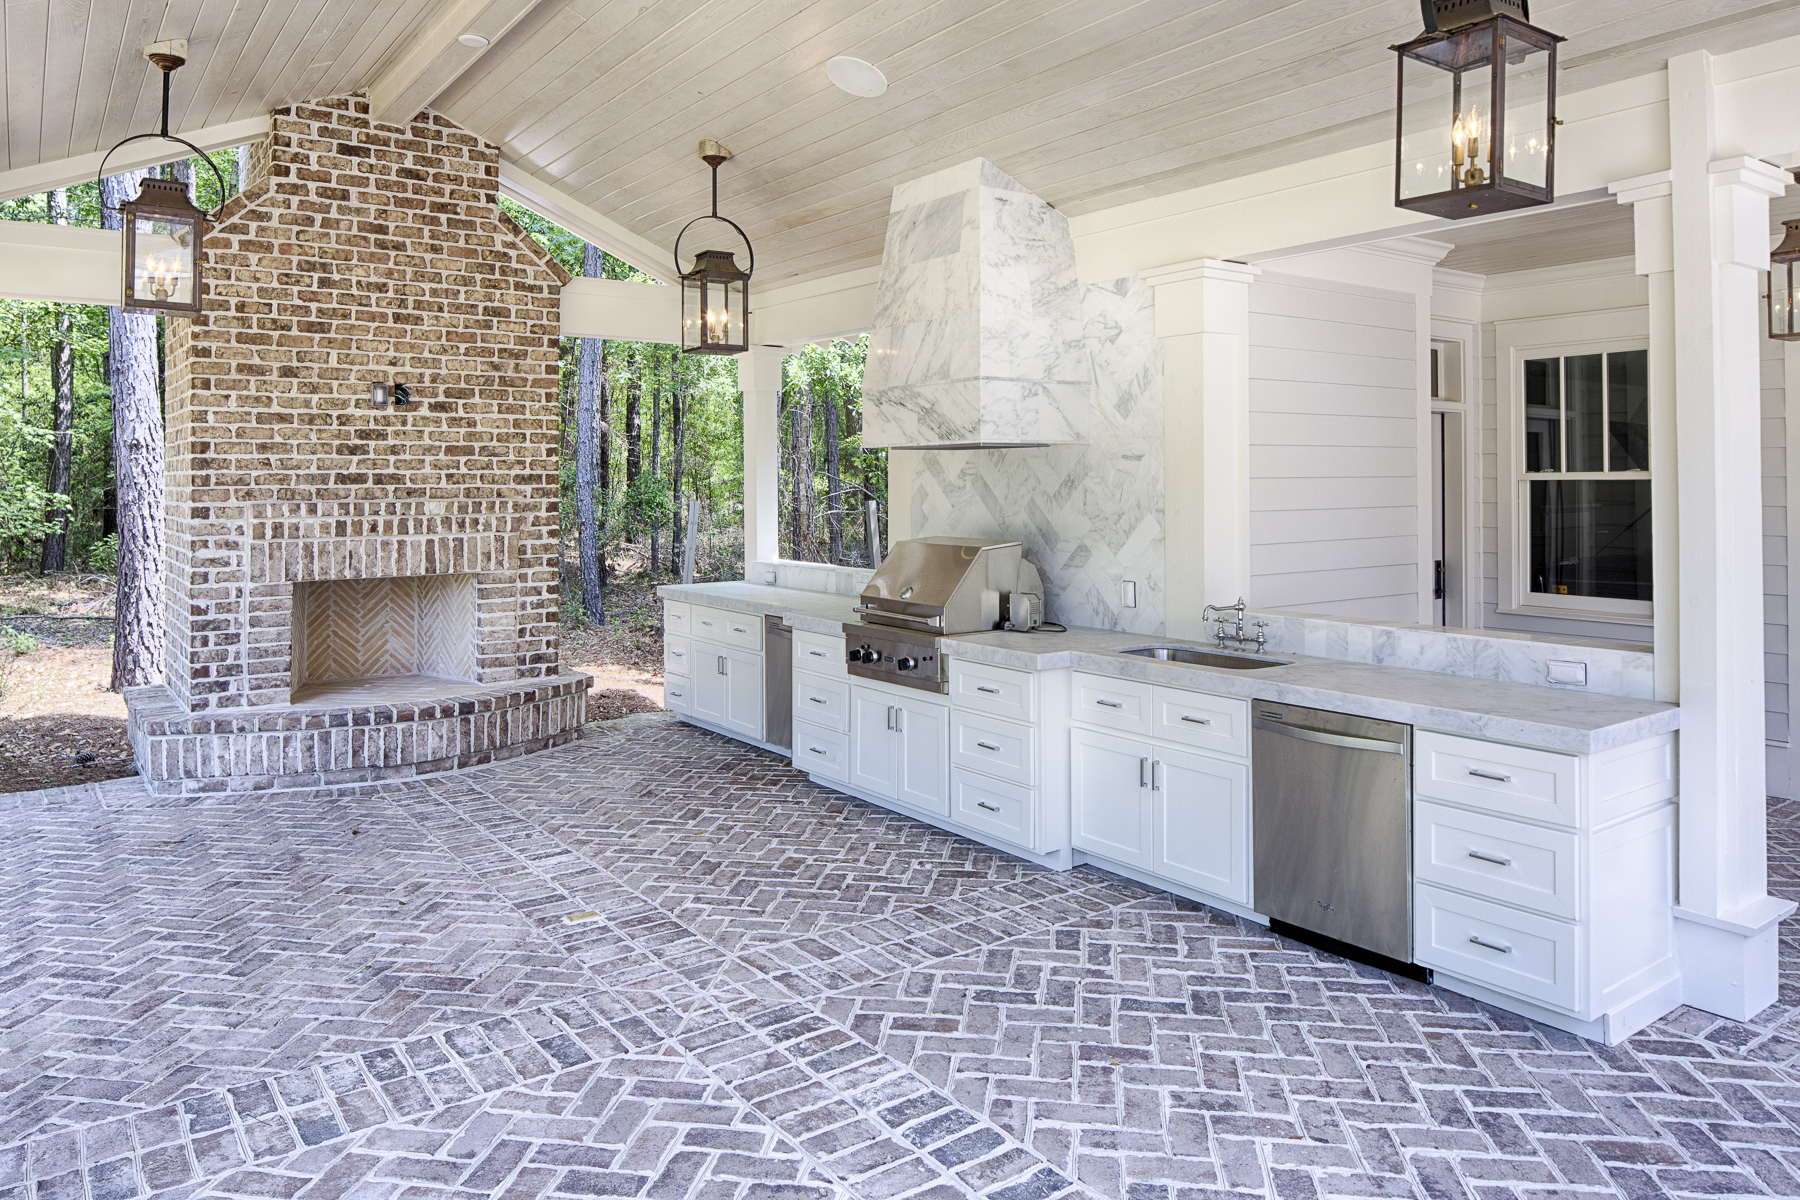 outdoors, outdoor living, kitchen